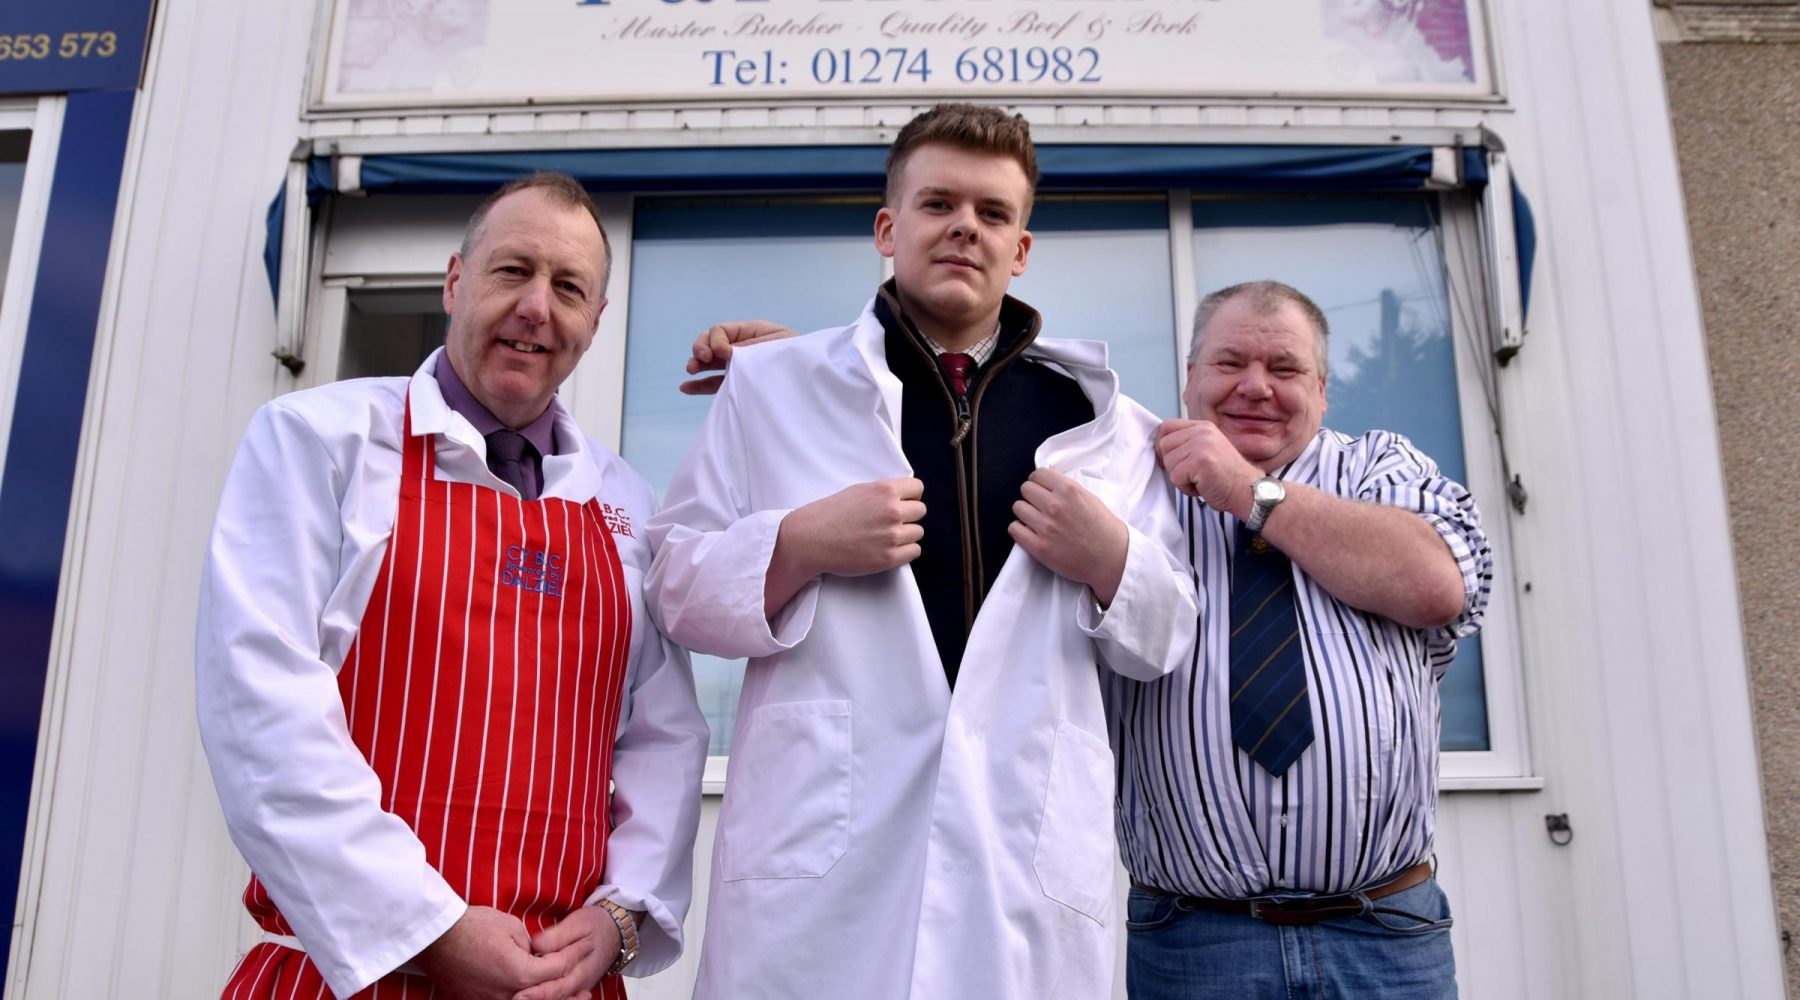 20-year-old to take on Birkenshaw butchers